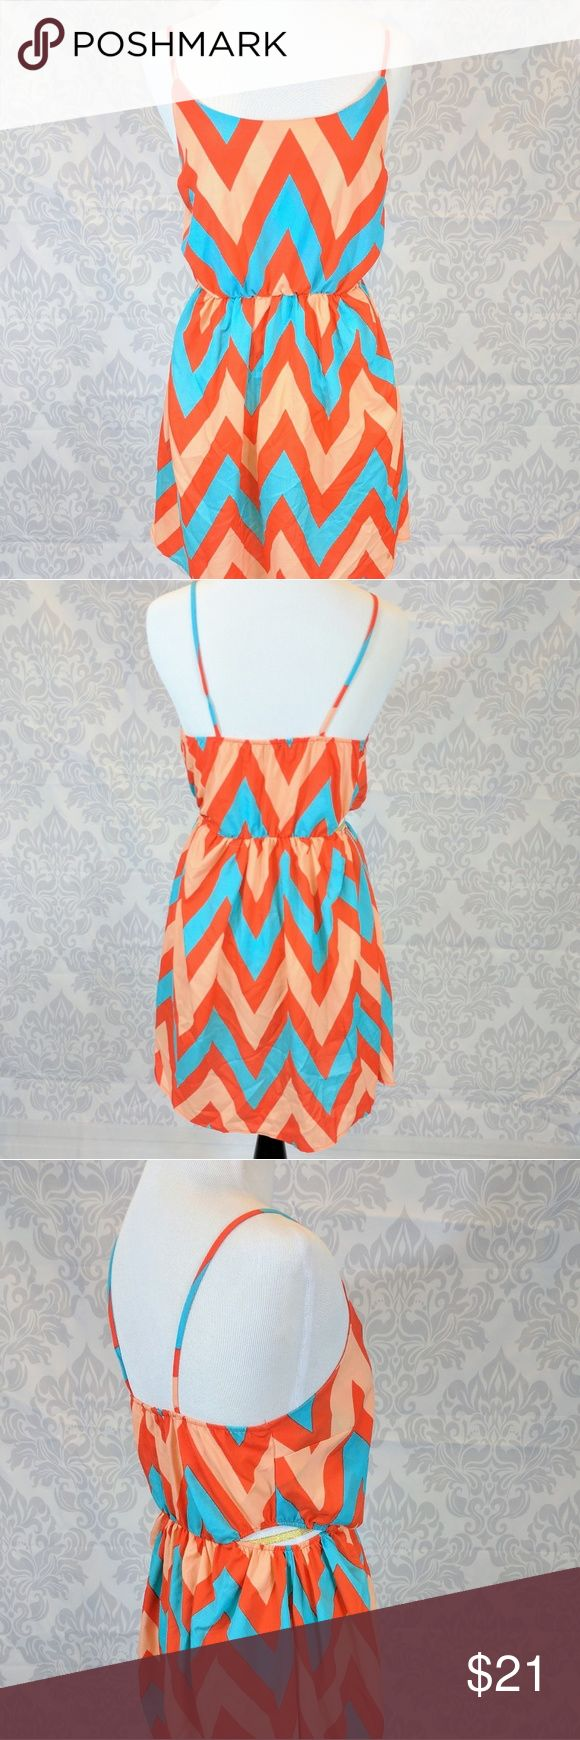 TINLEY | side cutout Chevron sundress Boutique brand Tinley, Coral orange and turquoise Chevron stripe sundress with cutout at side waist.   APPROXIMATE MEASUREMENTS:  Flat across bust: 16 inches Flat across waist: 11 inches (unstretched). Stretches to: 16 inches shoulder to waist: 16 inches Waist to hem: 17.5 inches tinley Dresses Mini